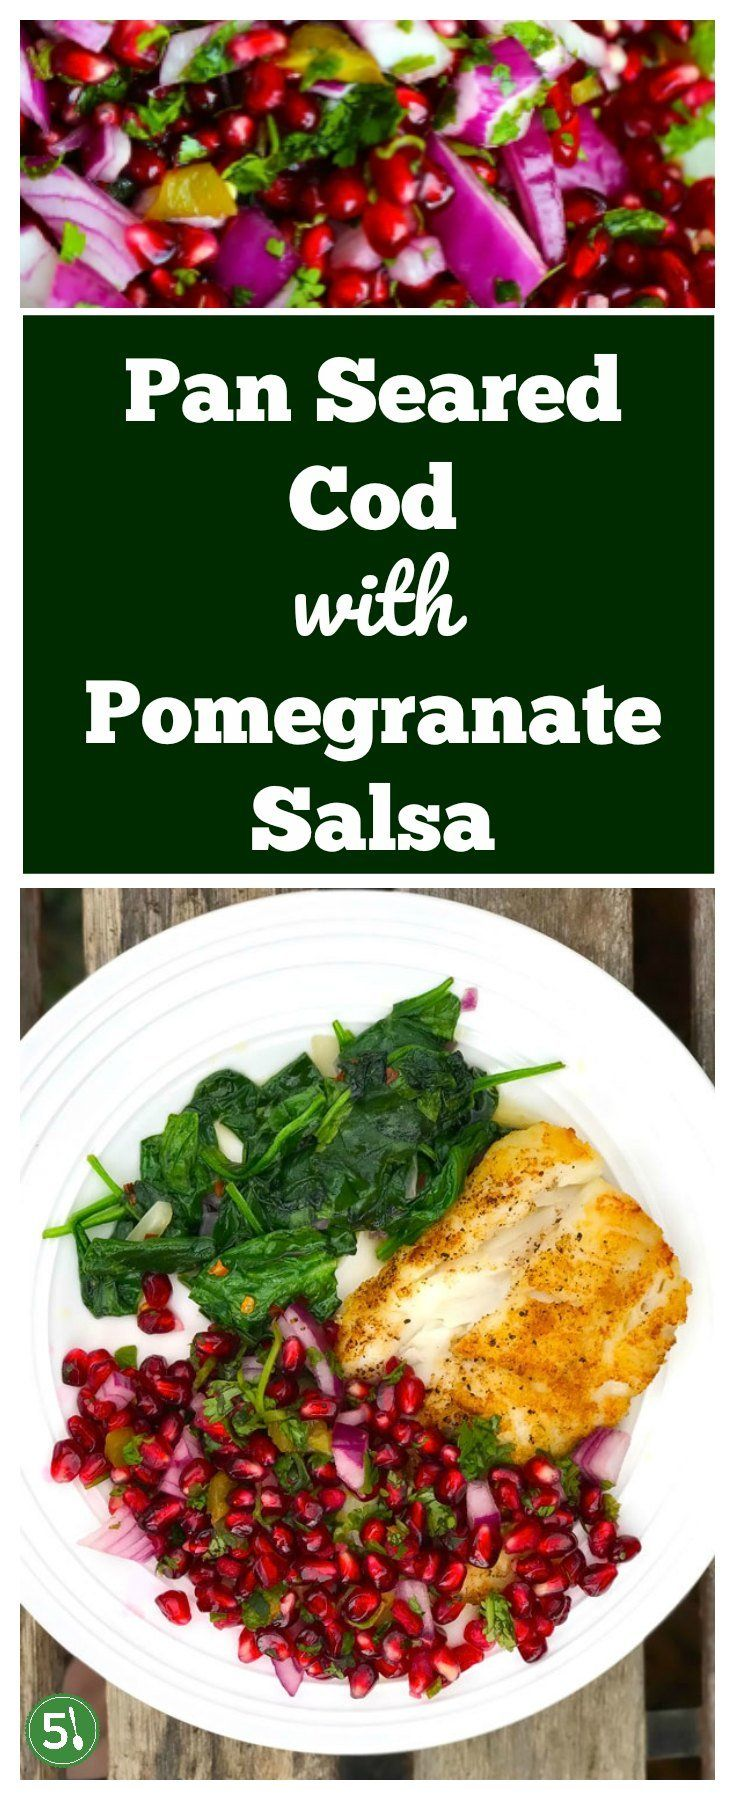 Easy and Healthy pan seared cod with pomegranate salsa, served with a side of vegetables, is the perfect clean eating dinner to spice up your week.